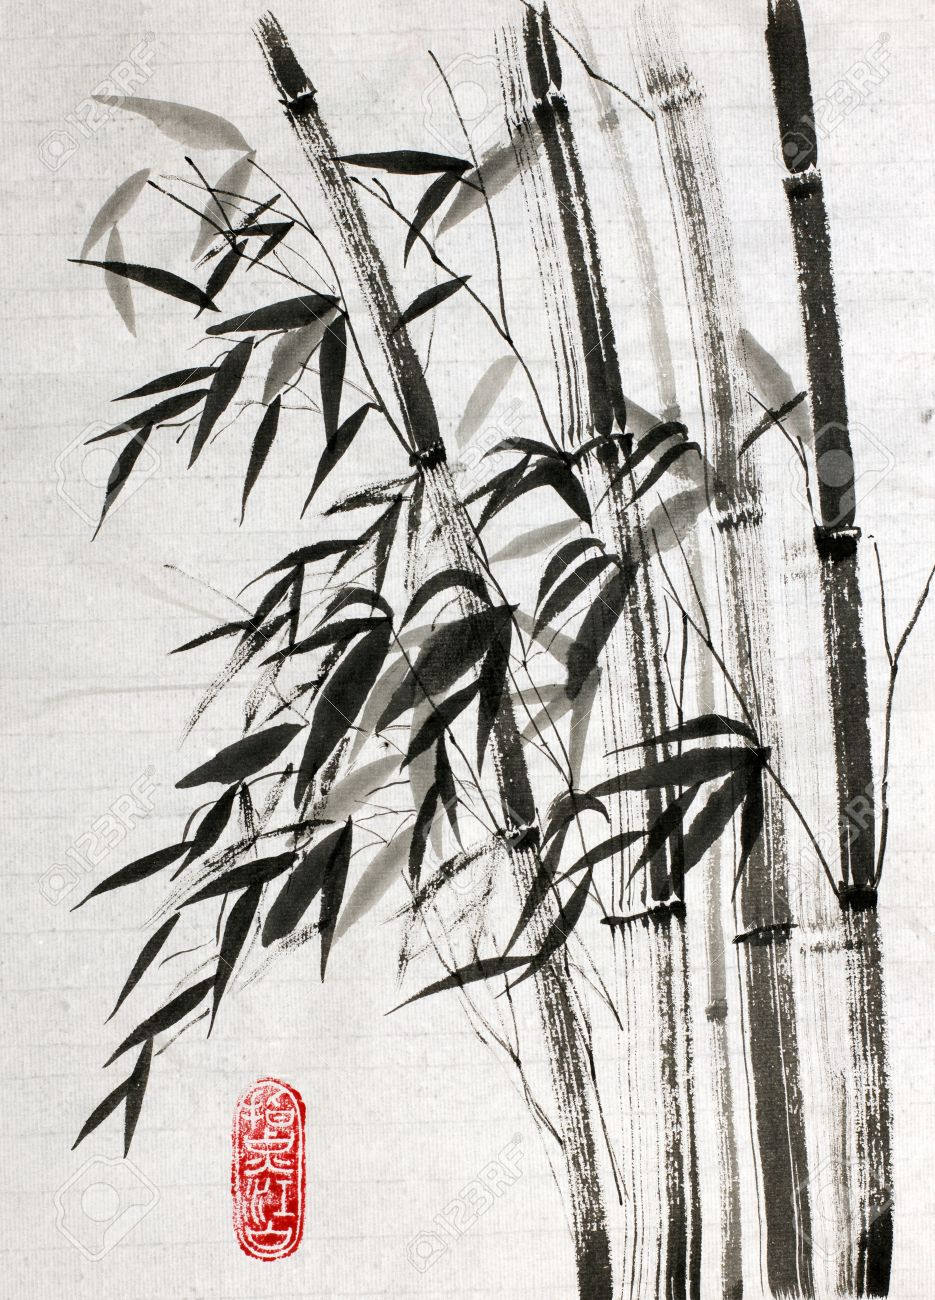 Bamboo Drawing On Rice Paper Stock Photo Picture And Royalty Free Image Image 63889260